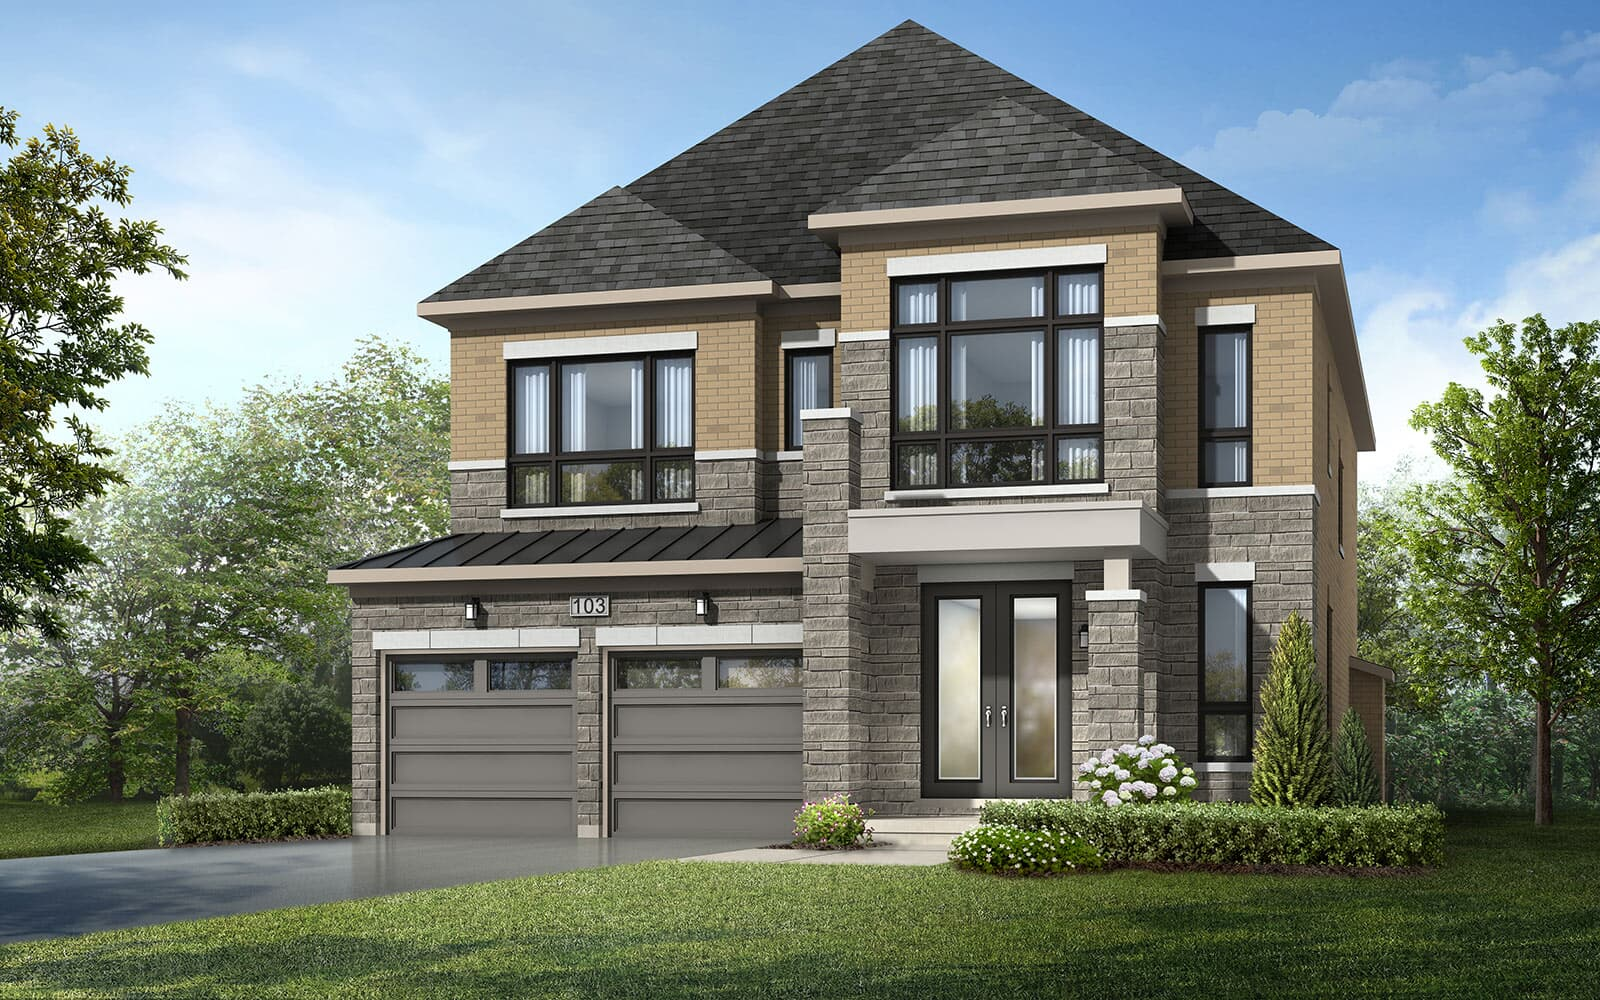 Exterior Jasper Style F Jasper at Woodhaven in Aurora Aurora ON Brookfield Residential